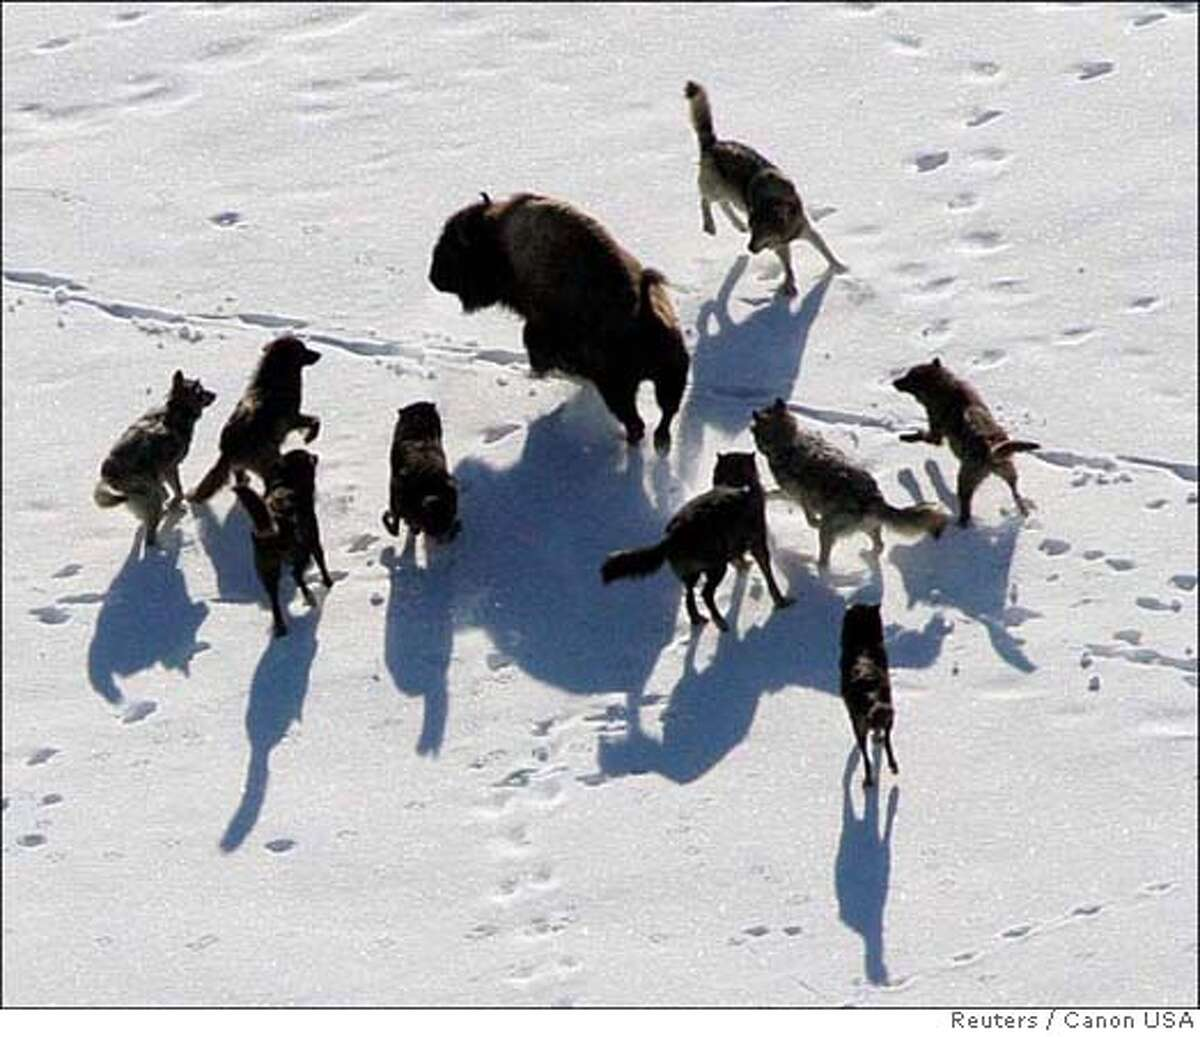 Gray wolves are seen nearing a Bison in Yellowstone National Park in this undated handout photograph released on February 21, 2008. Gray wolves in the northern Rocky Mountains, listed as endangered for more than three decades, no longer need protection under the Endangered Species Act, the U.S. government said. Environmental groups disagreed, saying the species has not fully recovered and vowed to sue to continue to protect wolves from hunting and other methods of killing that the groups said would likely follow the government's move. REUTERS/Canon USA/Handout (UNITED STATES). EDITORIAL USE ONLY. NOT FOR SALE FOR MARKETING OR ADVERTISING CAMPAIGNS. EUO